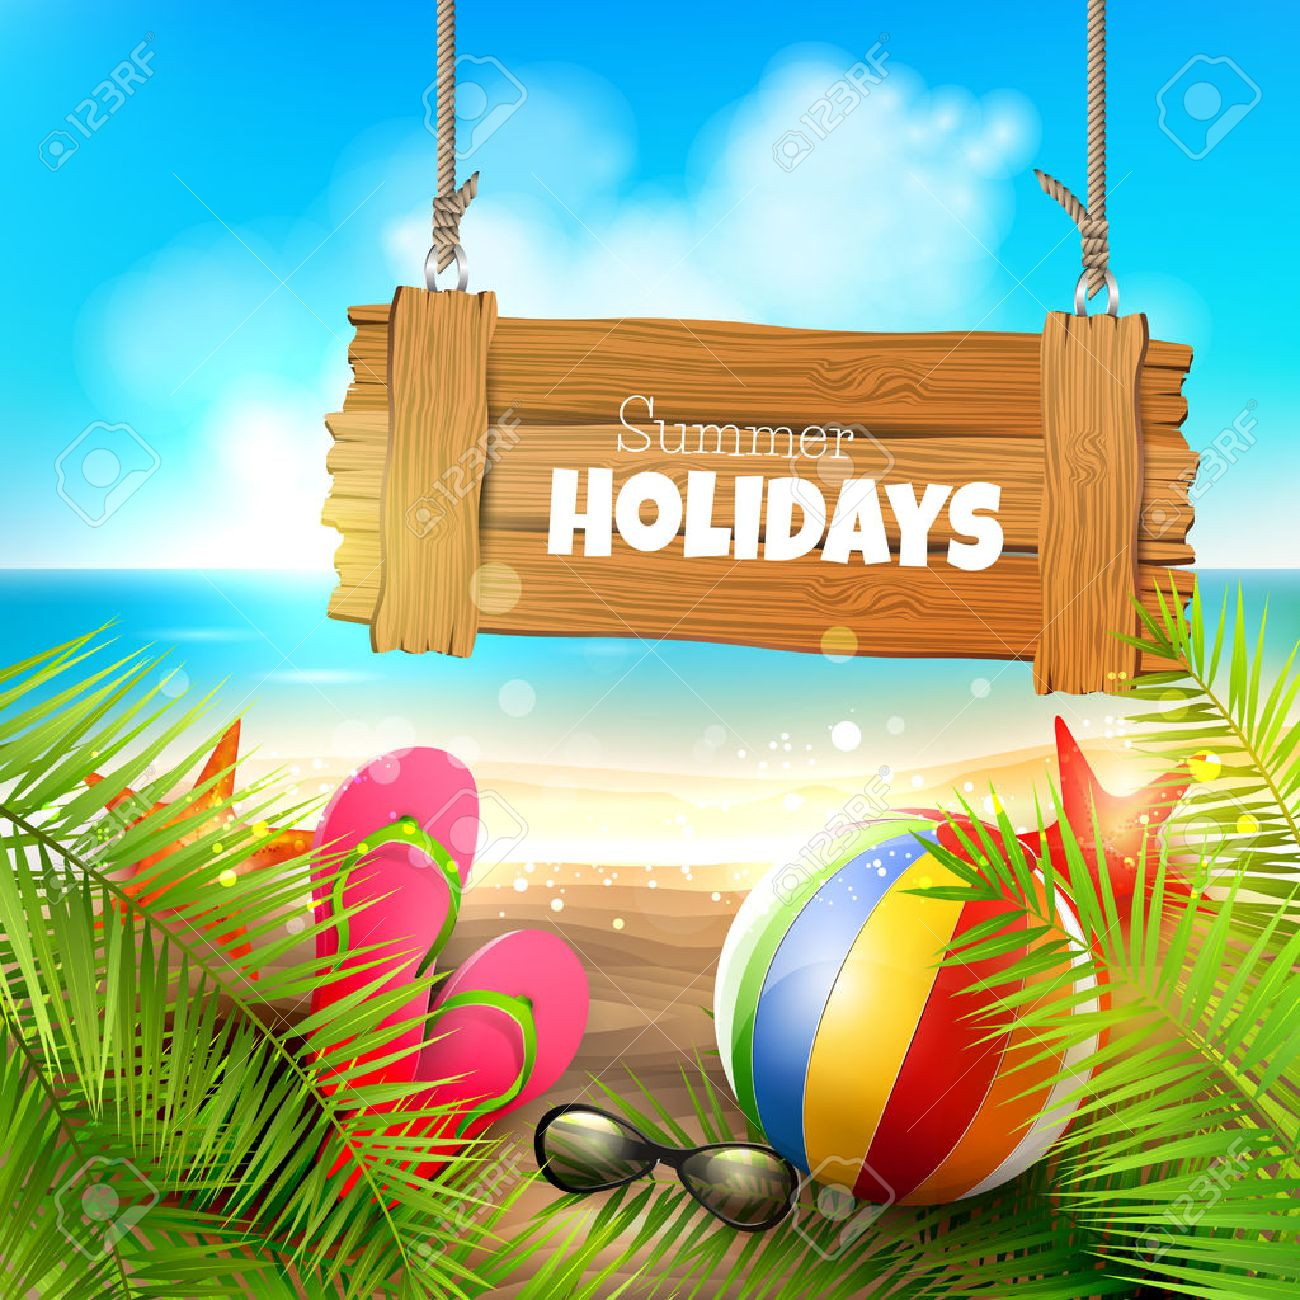 Summer holidays - background with wooden sign on the beach - 39788641